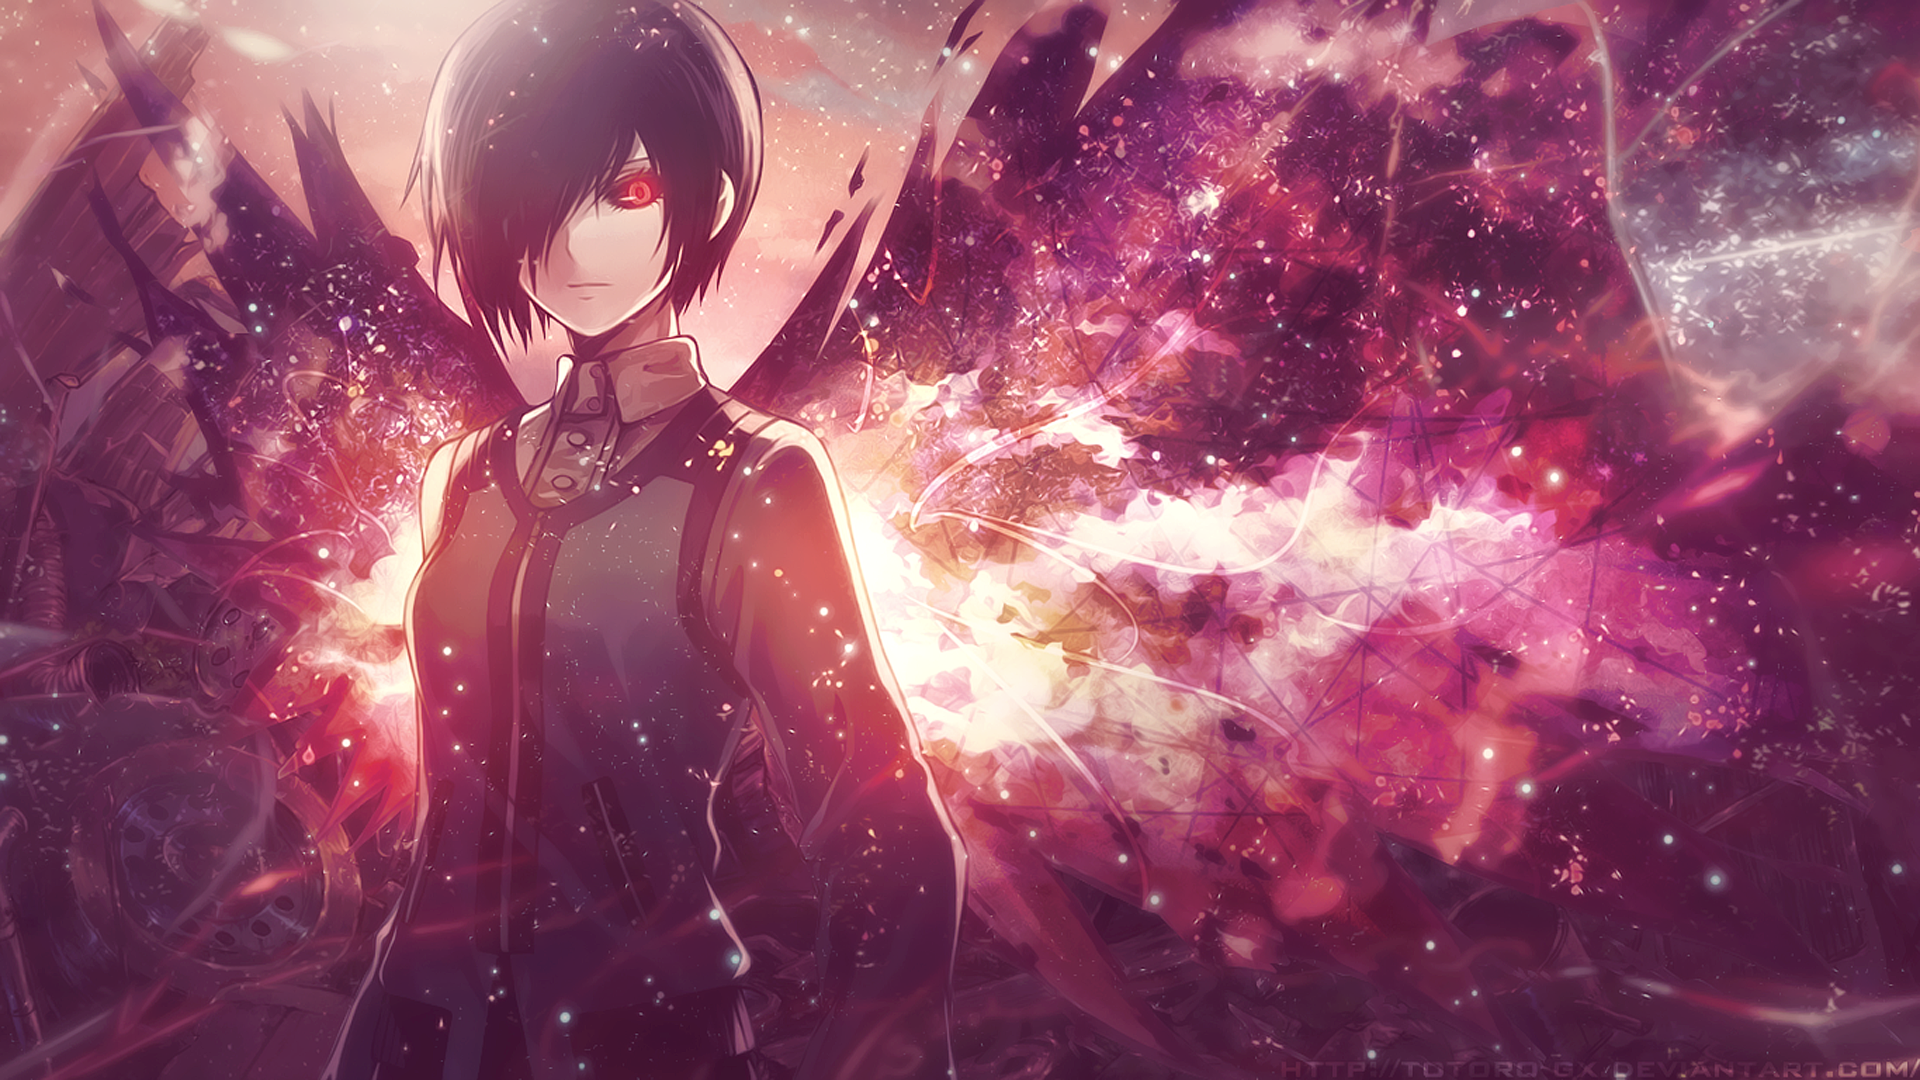 Tokyo Ghoul Hd Wallpaper Background Image 1920x1080 Id